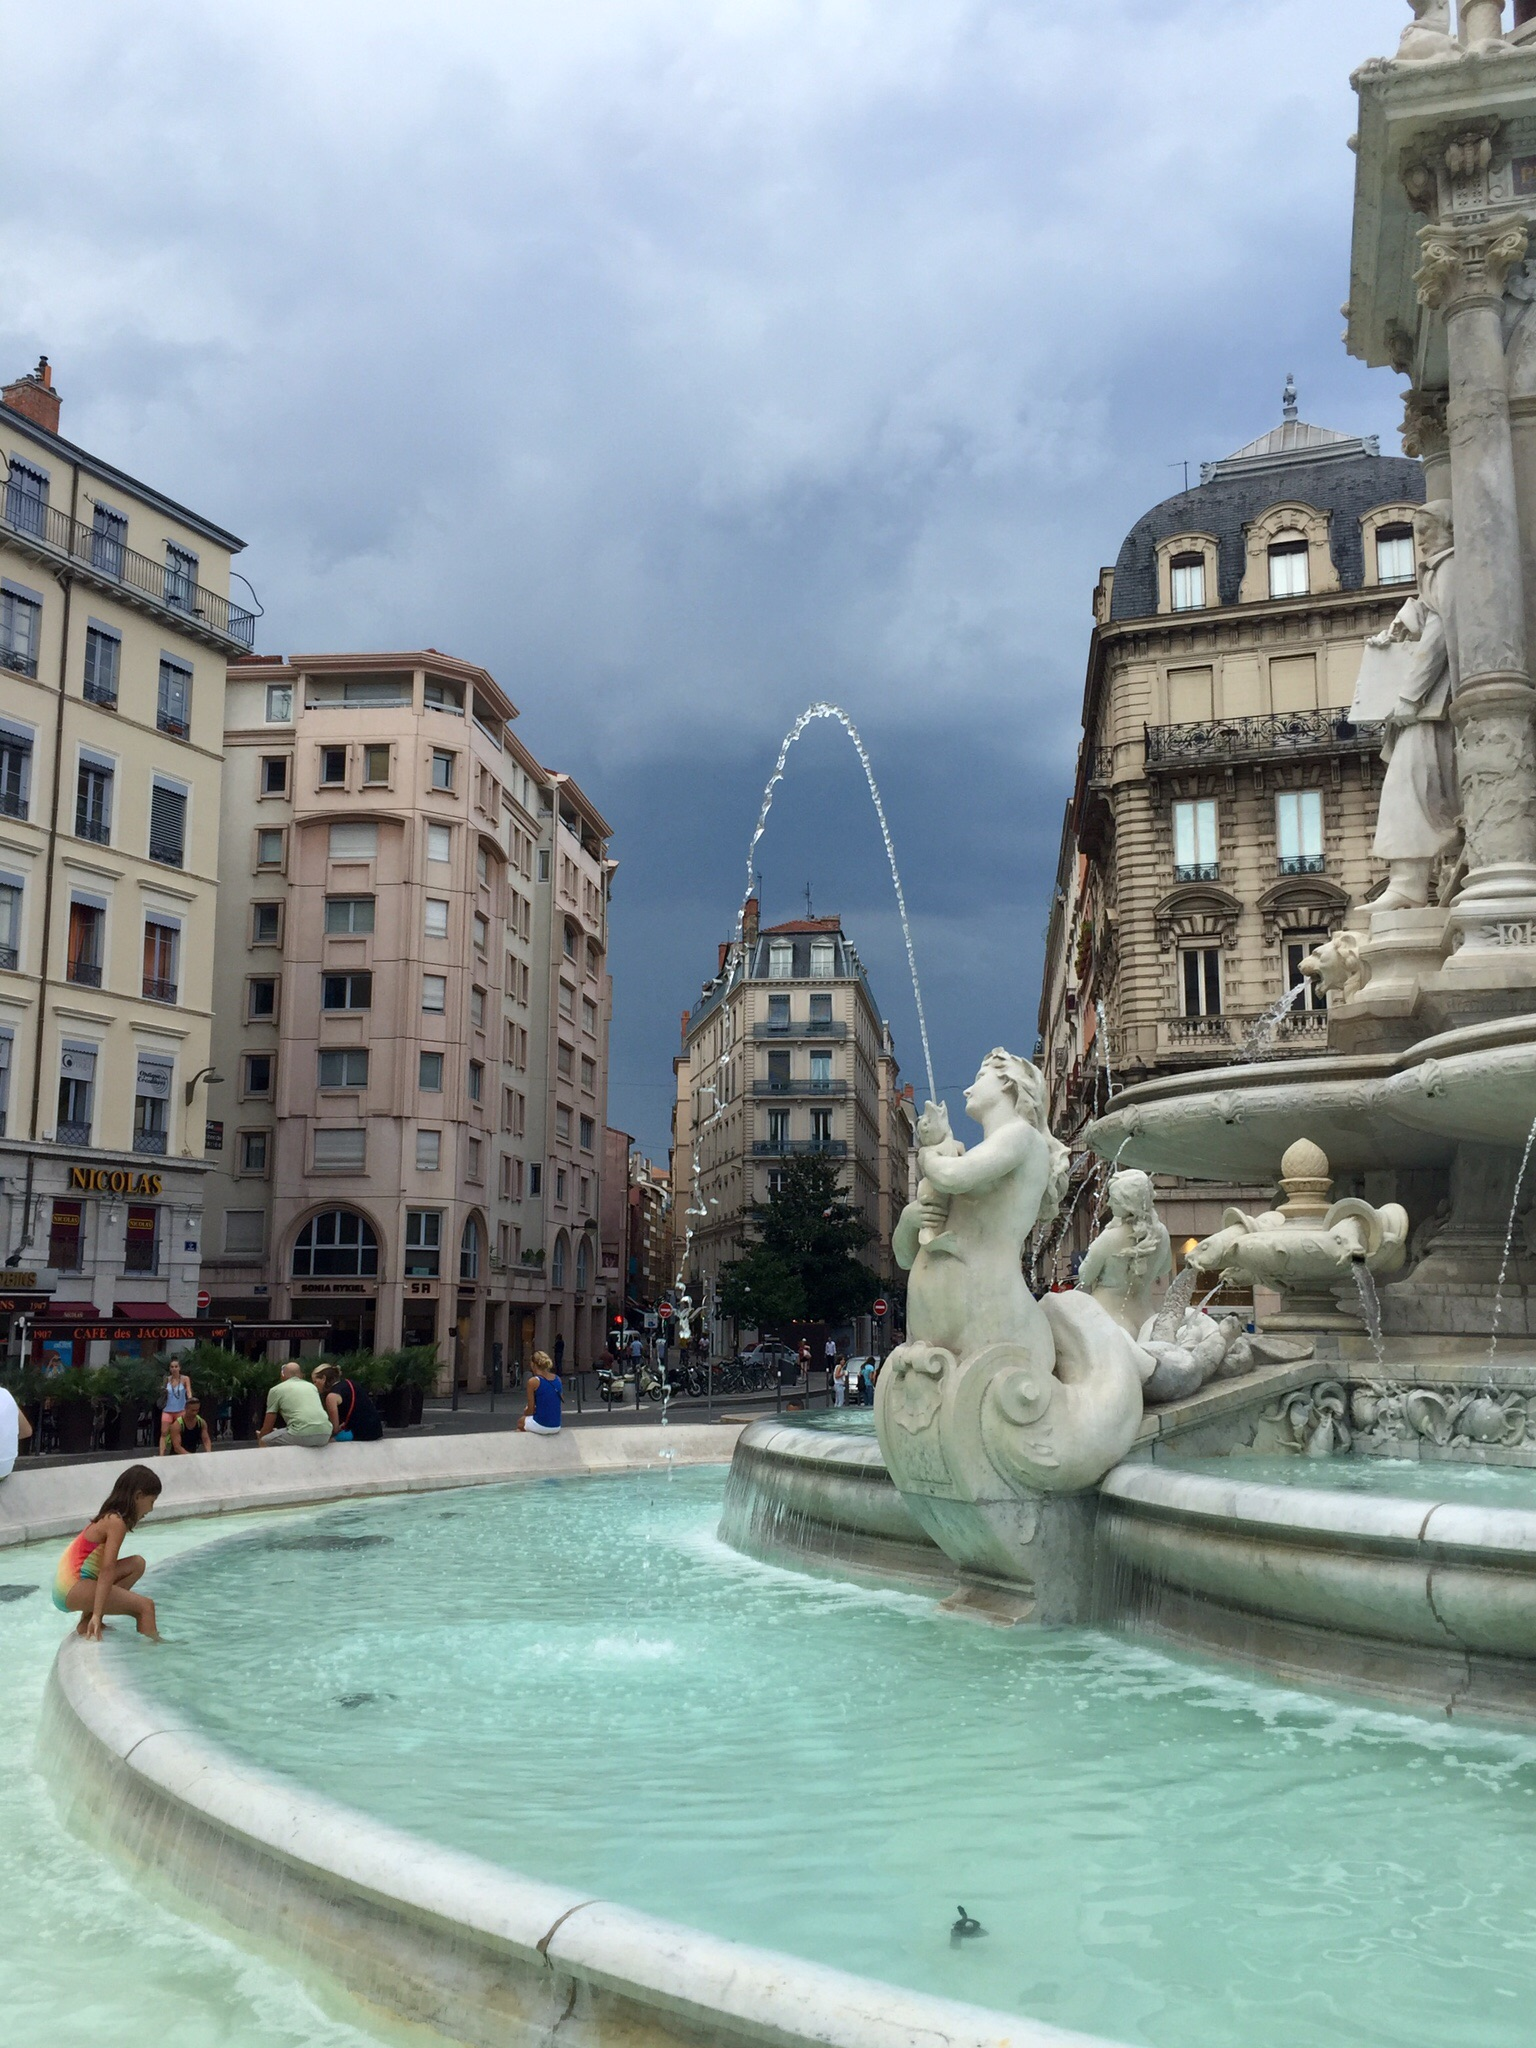 My daughter stepping into the fountain at Place des Jacobins, Lyon, just before the storm arrived